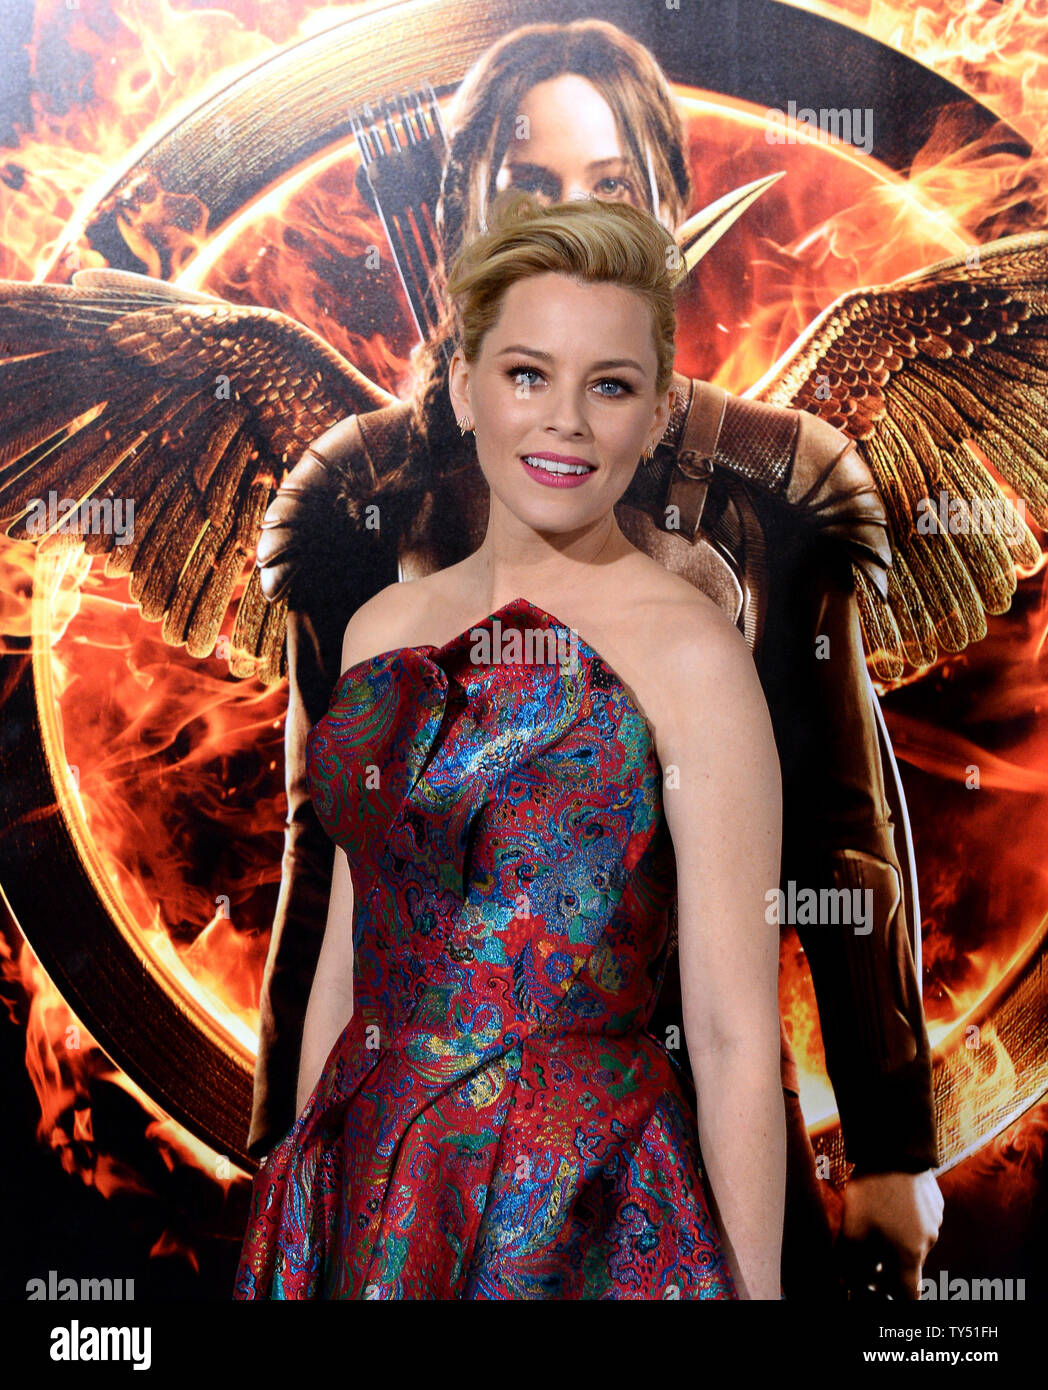 Actress Elizabeth Banks Attends The Premiere Of The Sci Fi Motion